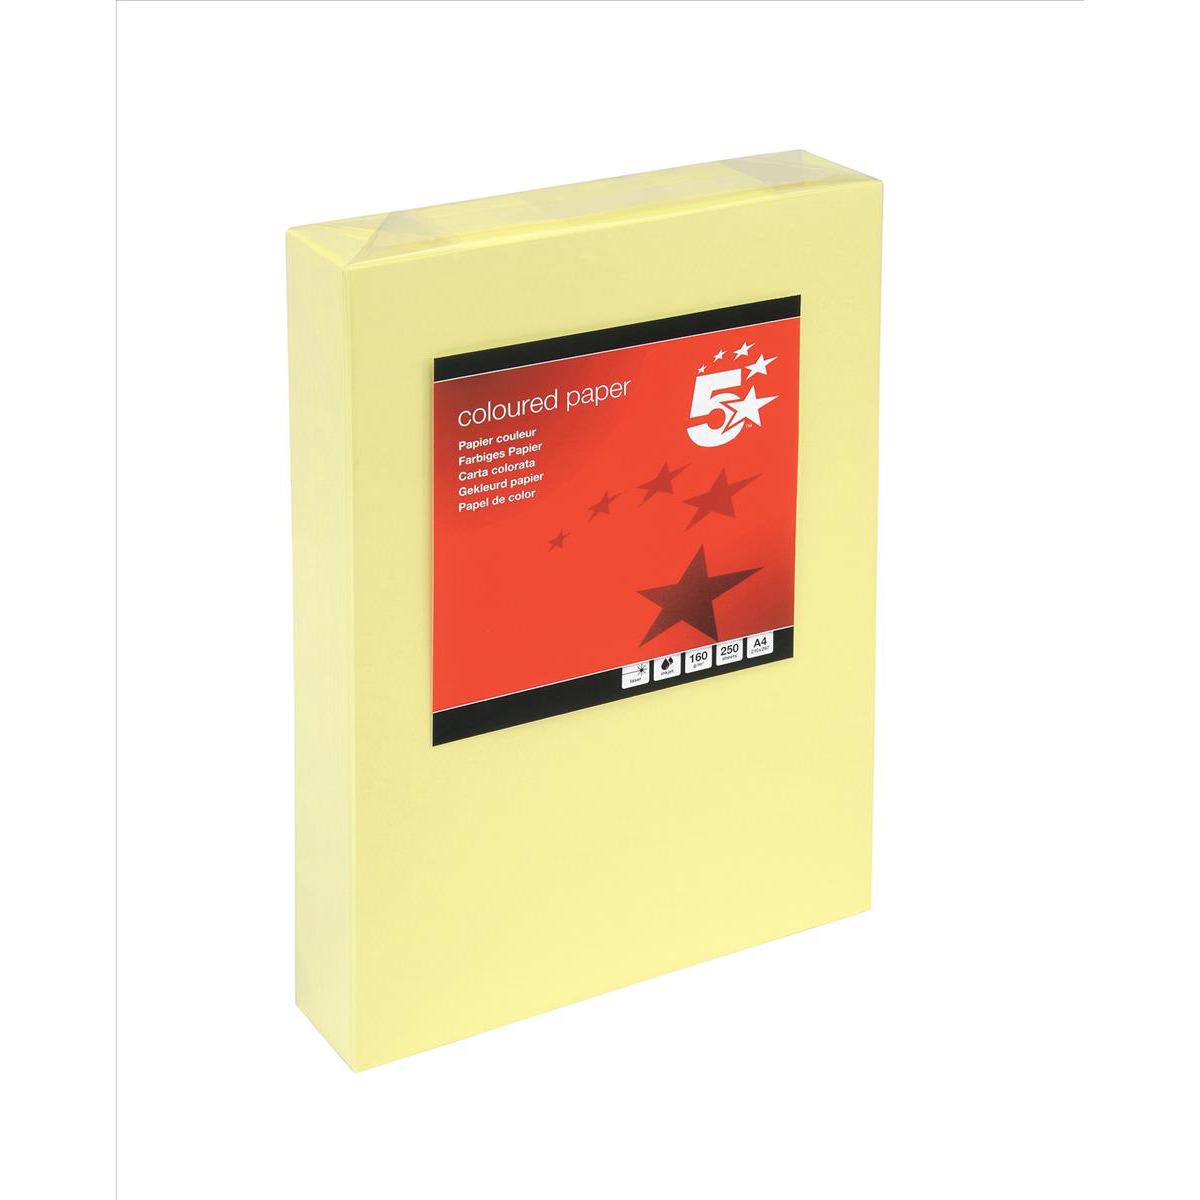 Card (160g+) 5 Star Office Coloured Card Multifunctional 160gsm A4 Light Yellow 250 Sheets